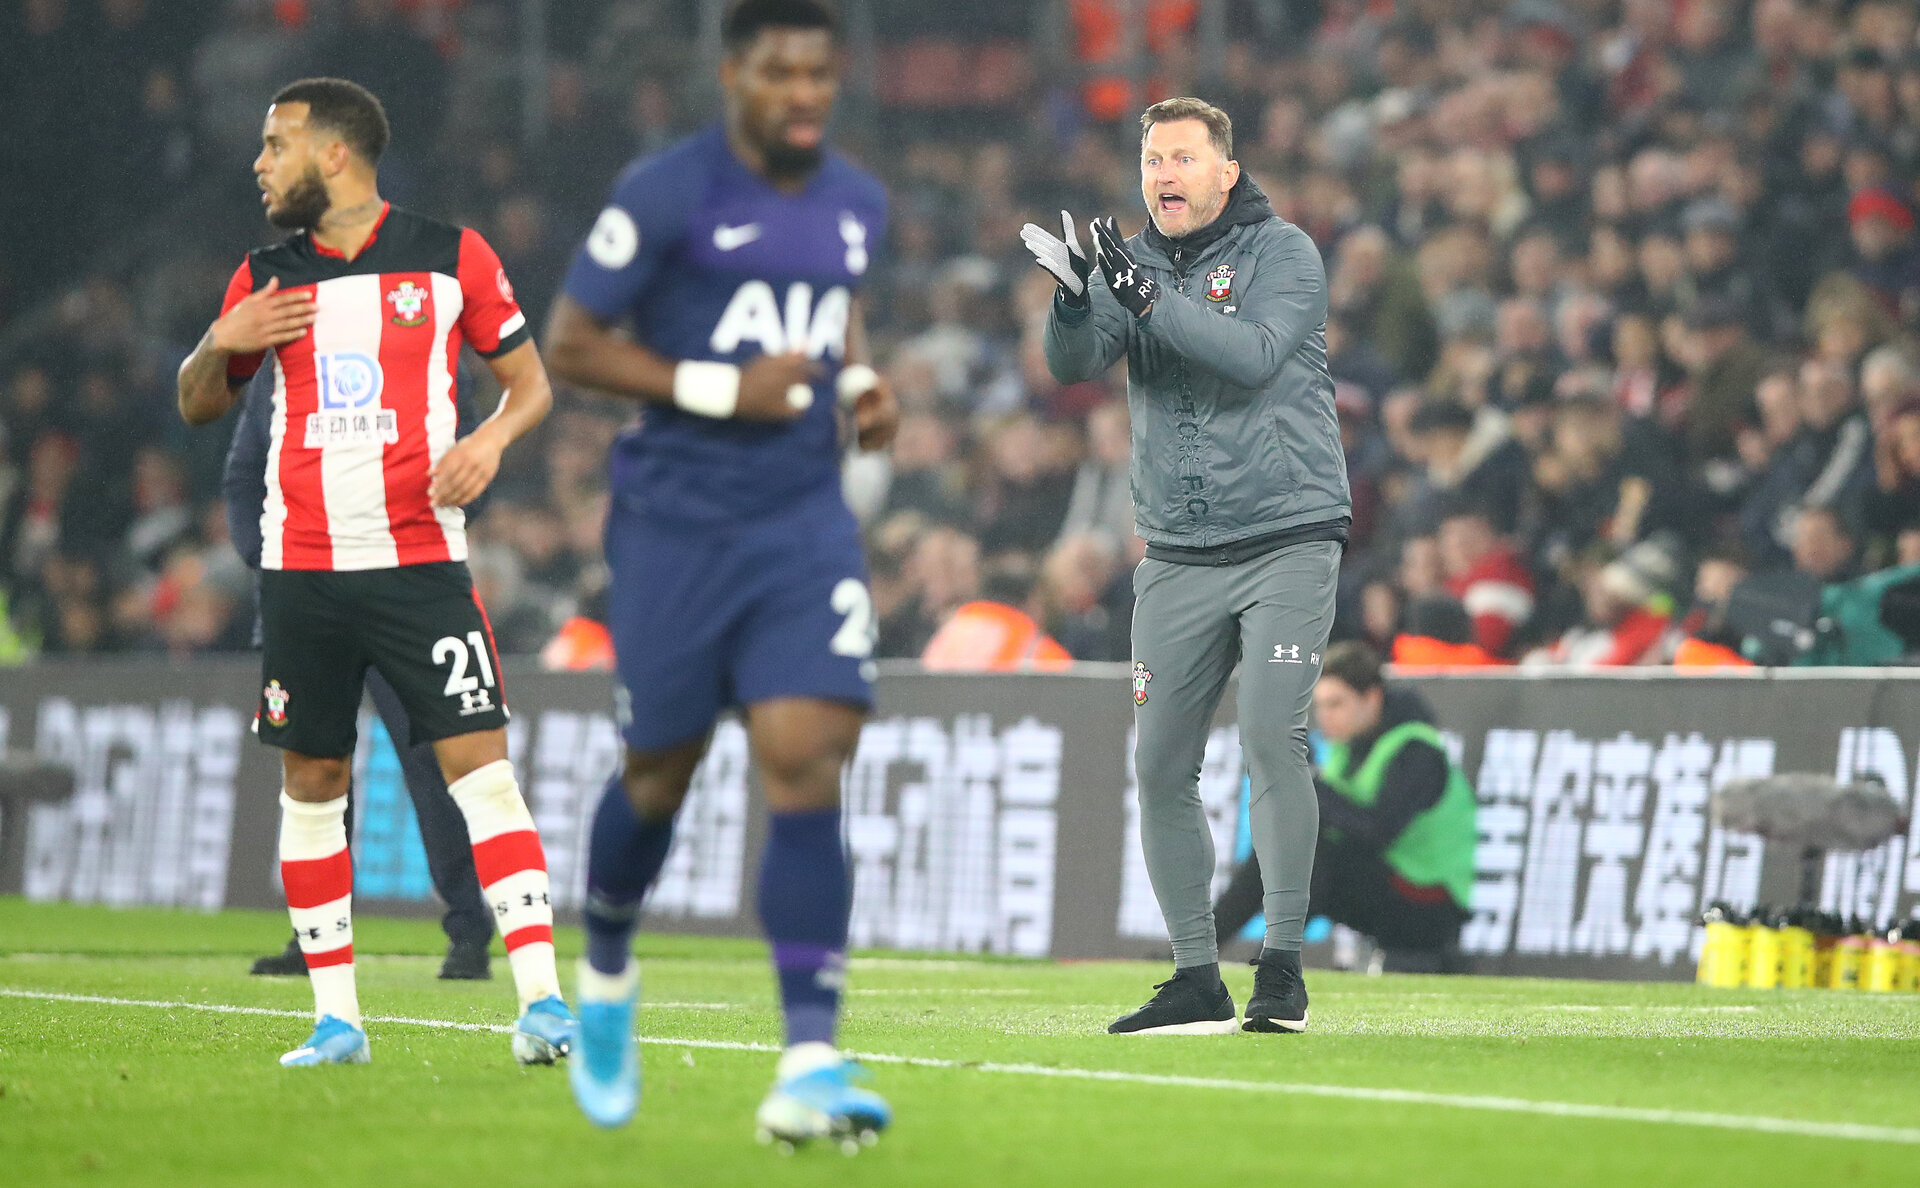 SOUTHAMPTON, ENGLAND - JANUARY 01: Ralph Hasenhuttl of Southampton during the Premier League match between Southampton FC and Tottenham Hotspur at St Mary's Stadium on January 01, 2020 in Southampton, United Kingdom. (Photo by Matt Watson/Southampton FC via Getty Images)